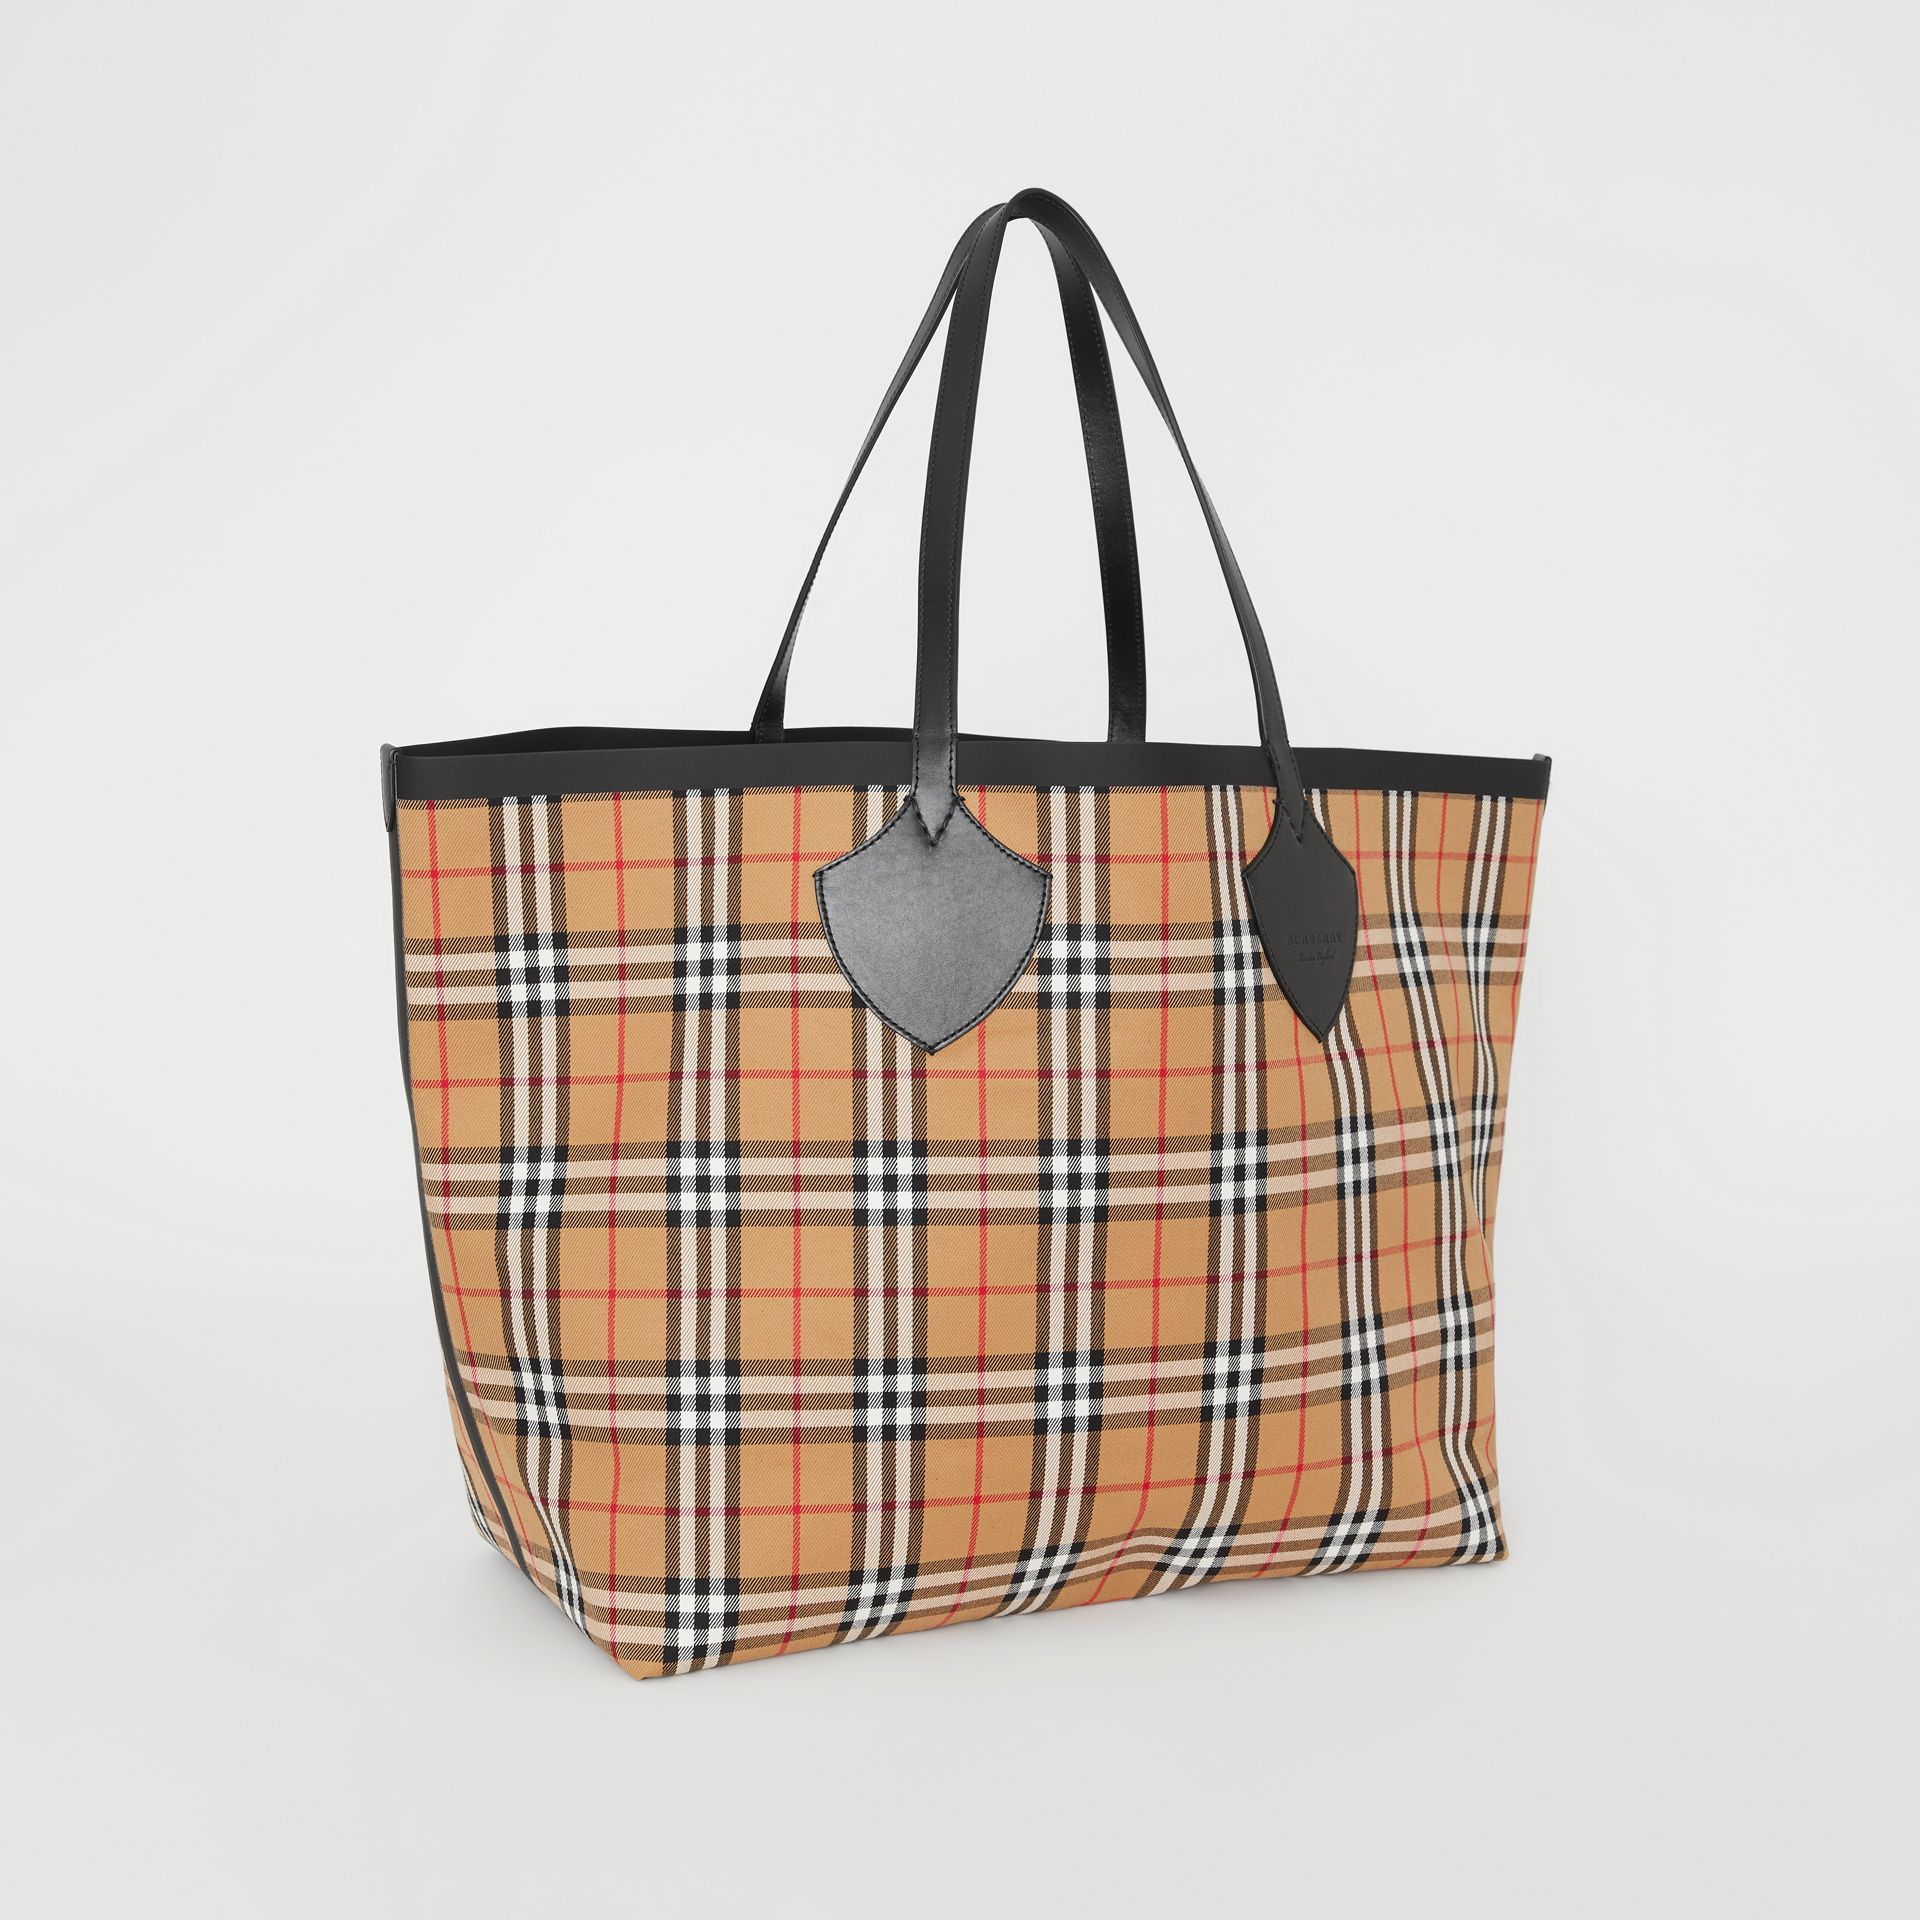 Sac tote The Giant réversible en coton à motif Vintage check (Jaune Antique) | Burberry - photo de la galerie 6